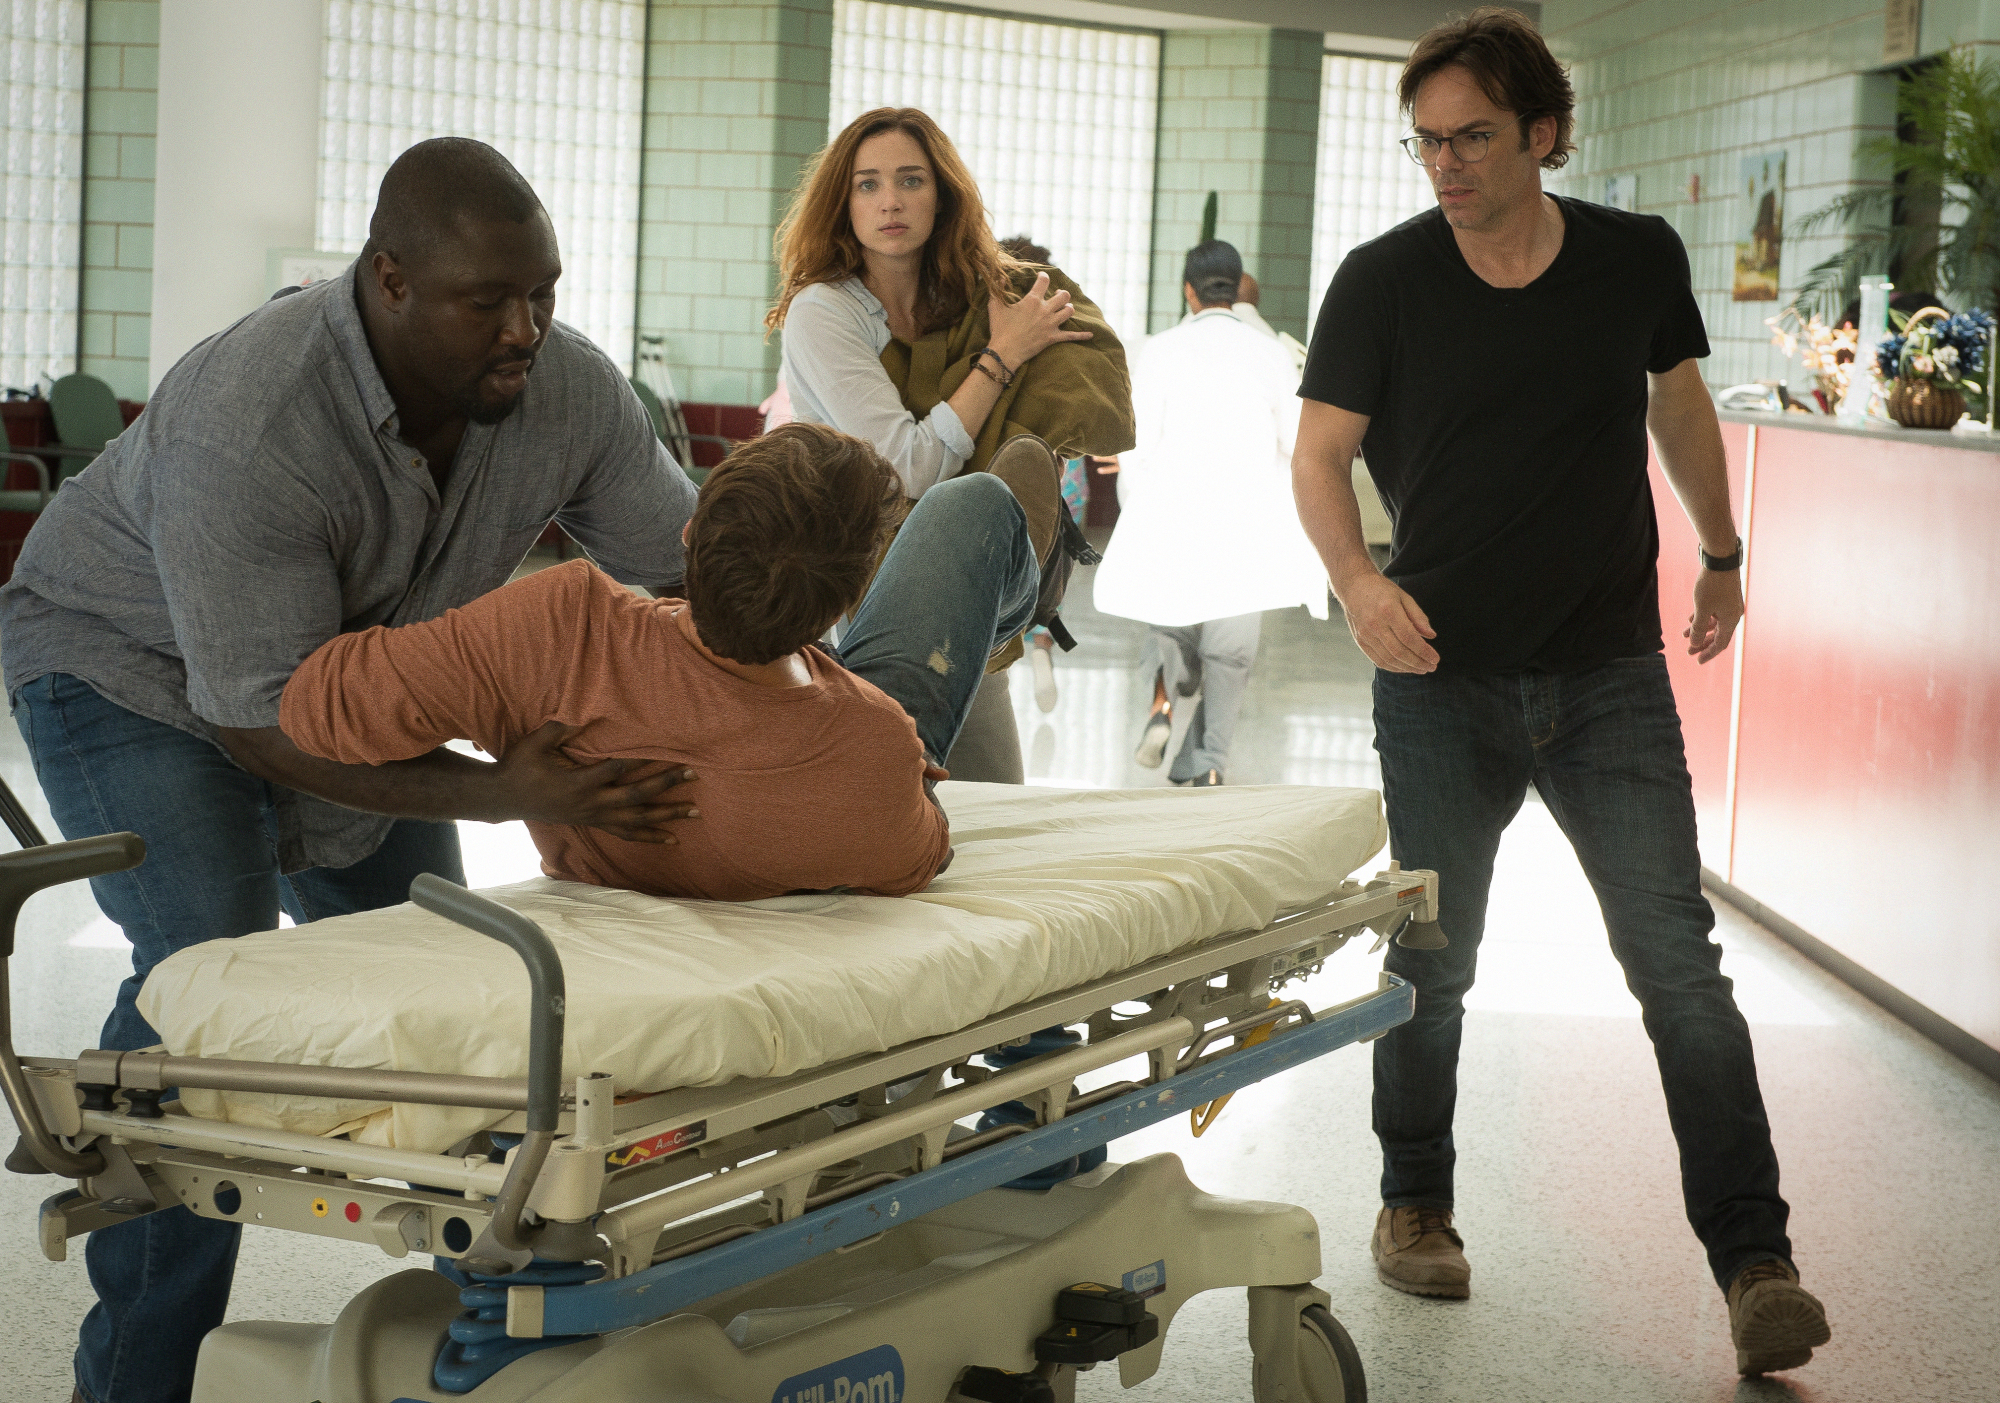 Nonso Anozie as Abraham Kenyatta, James Wolk as Jackson Oz, Kristen Connolly as Jamie Campbell, and Billy Burke as Mitch Morgan.